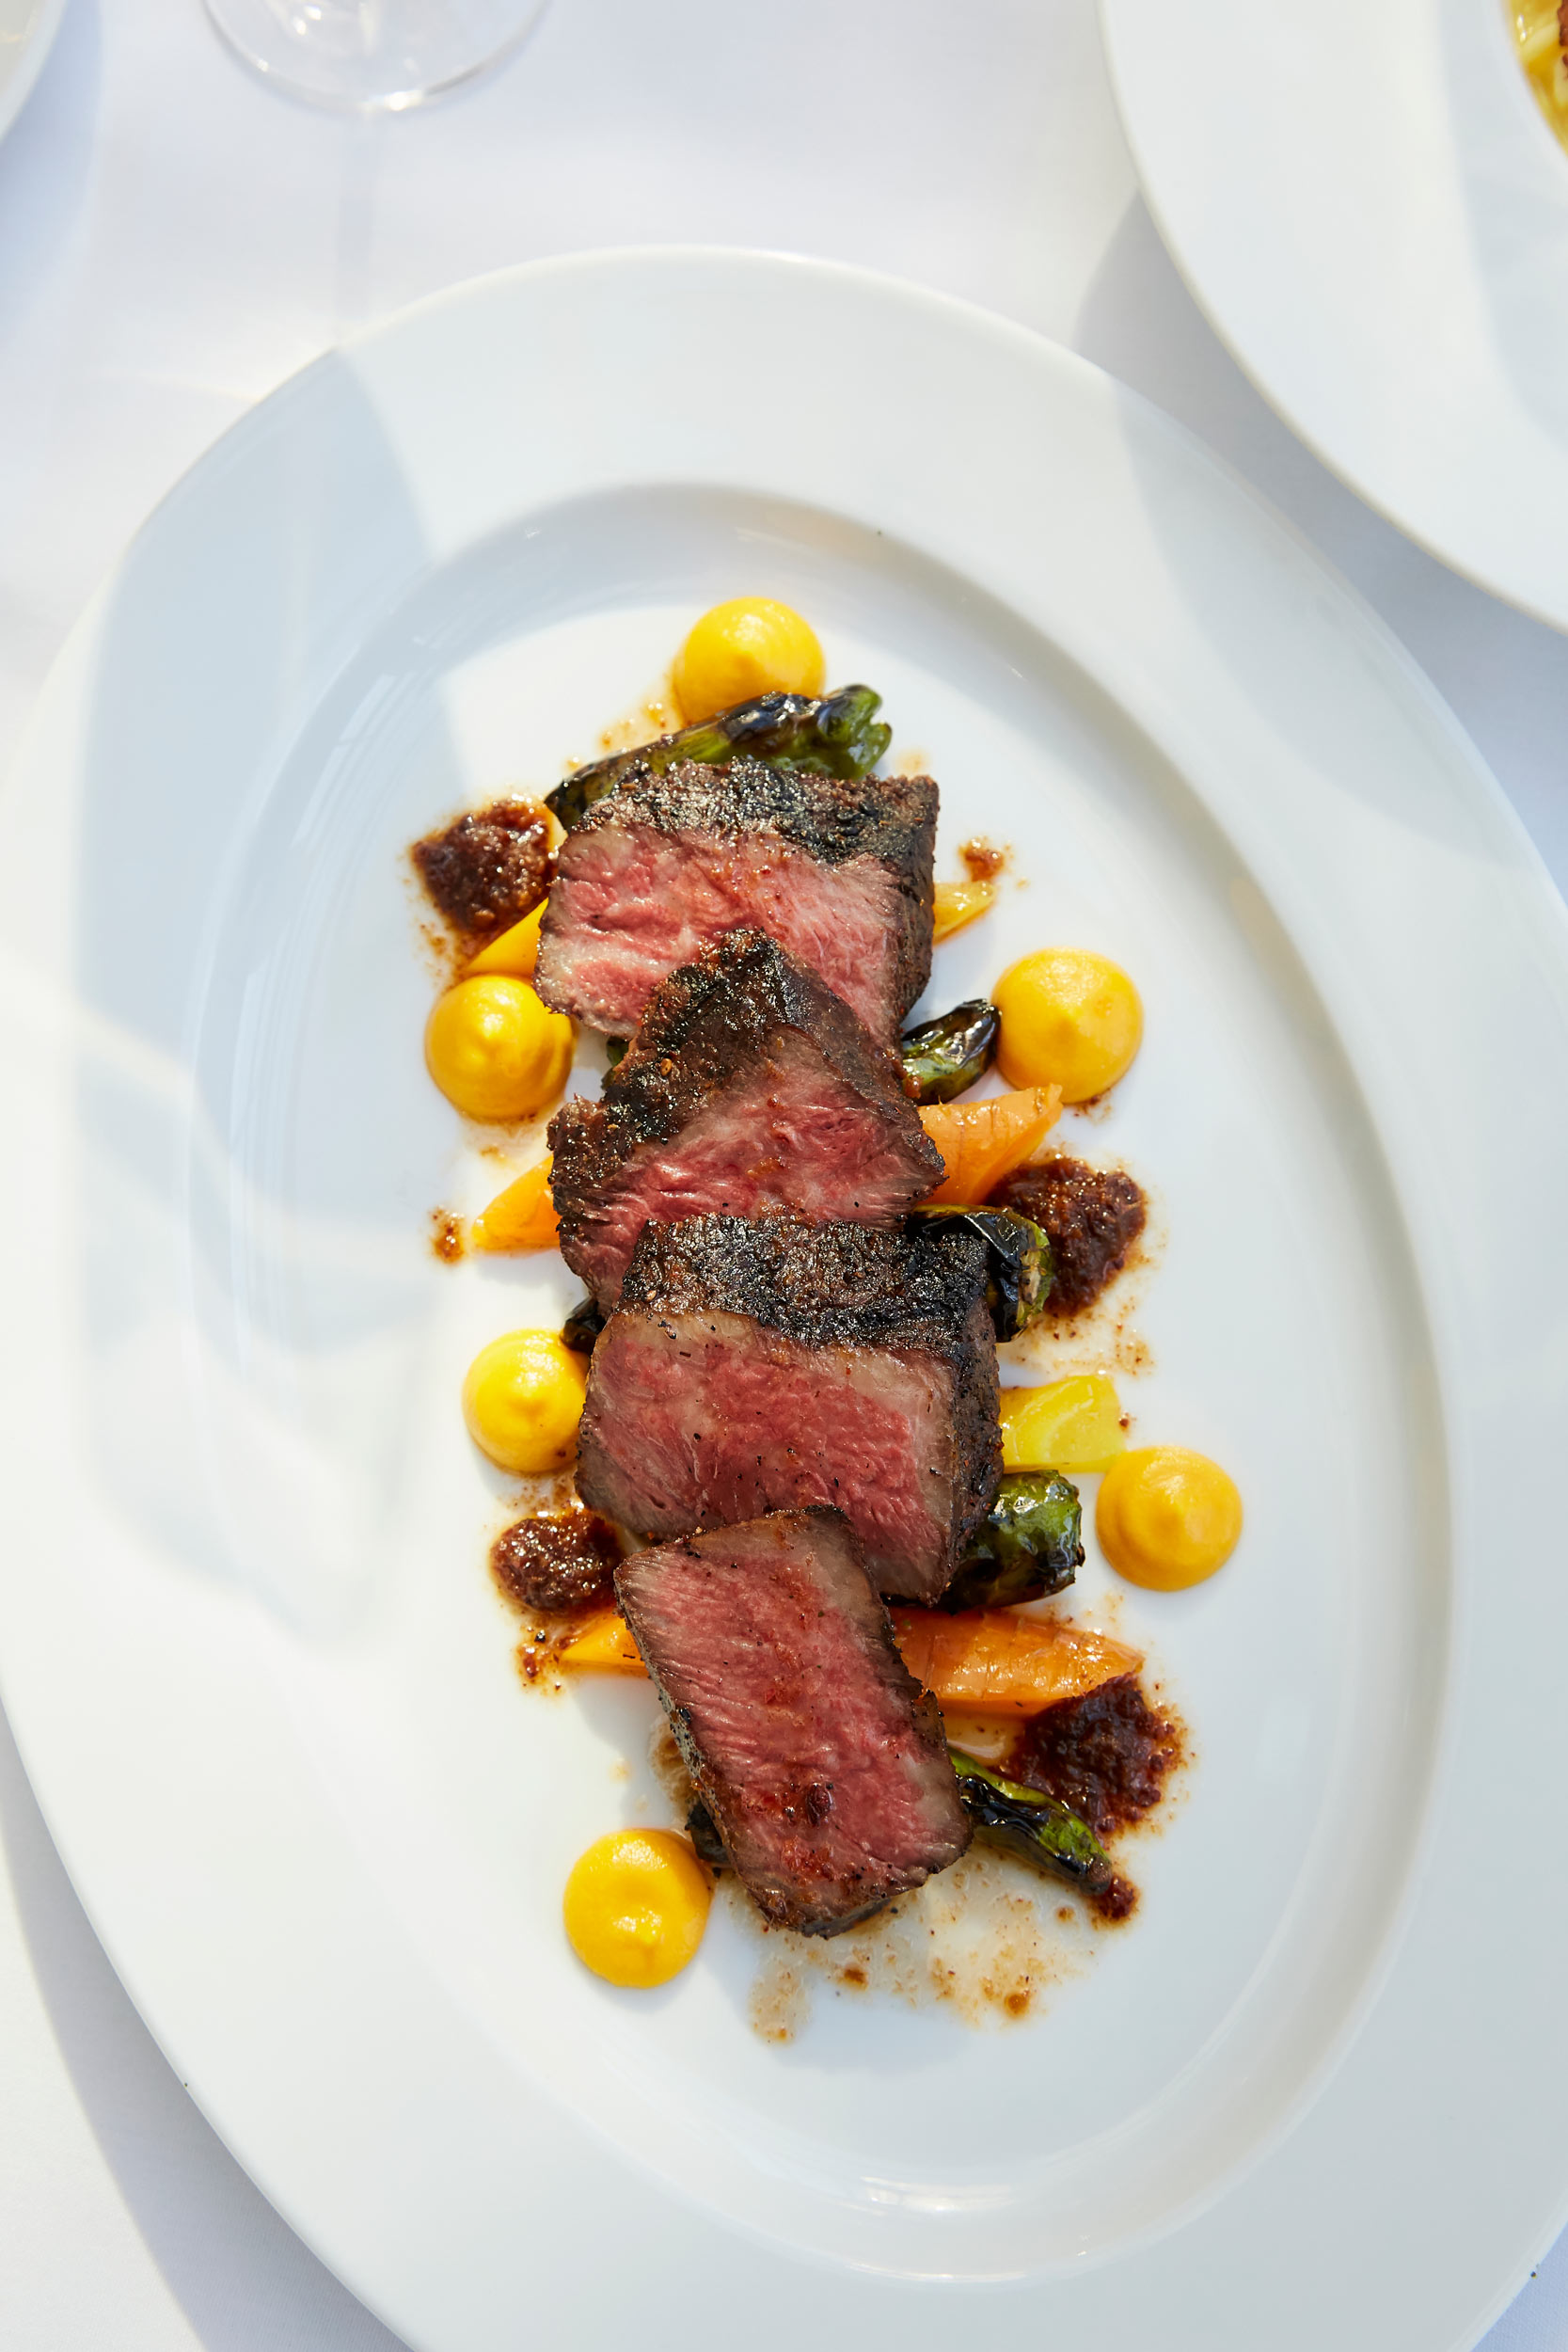 Wagyu Flat Iron Steak photo by Chris Kessler Photography.  Chris Kessler is a freelance Photographer based in Milwaukee Wisconsin. Specializing in Food photography and portraiture.